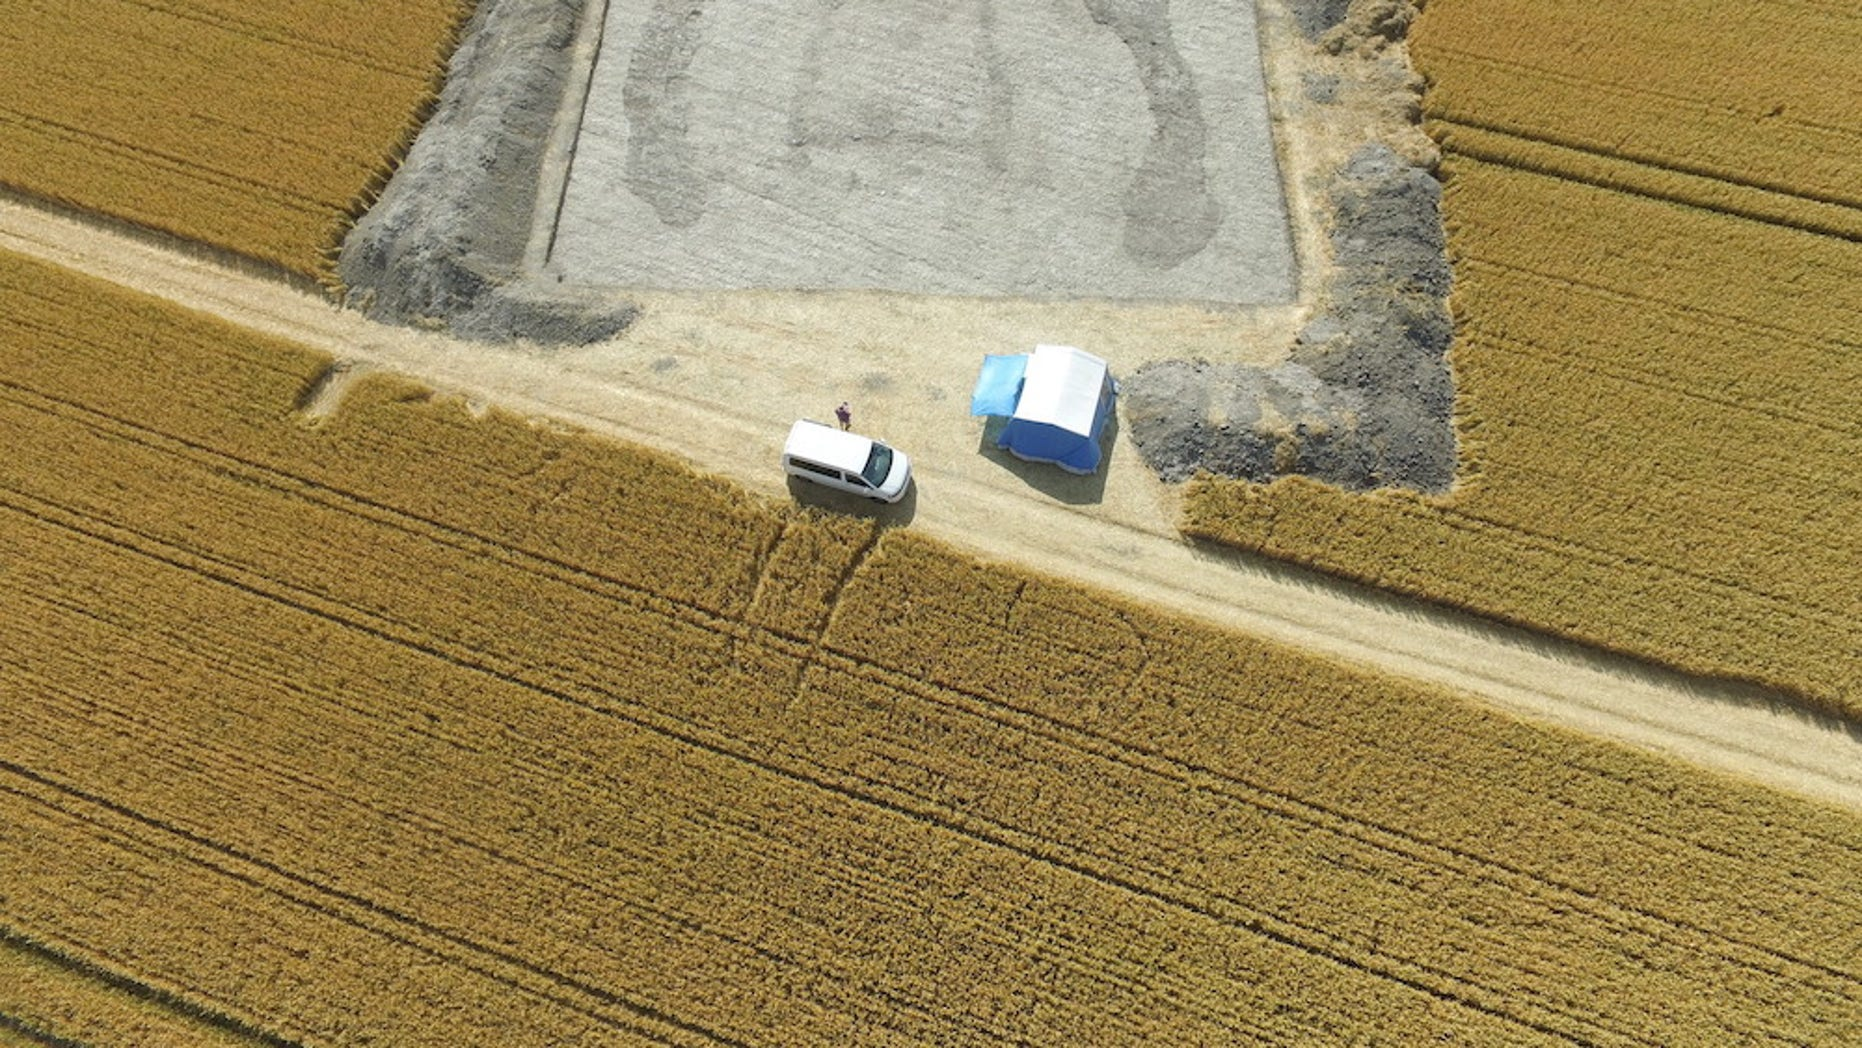 Archaeologists looking at aerial photography found a hidden long barrow, or Neolithic burial chamber, hidden beneath a wheat field